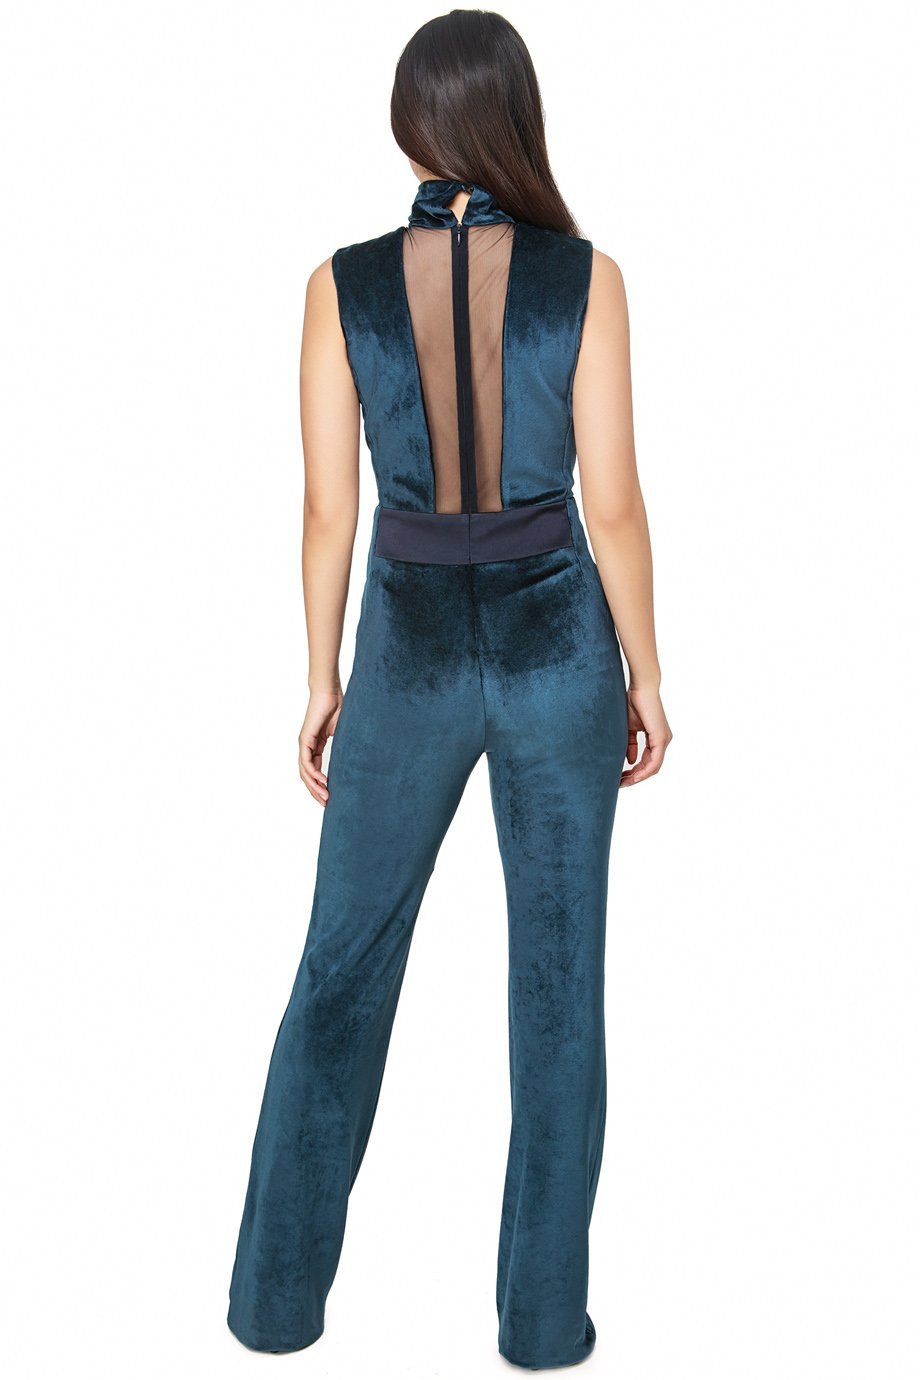 Galvan London Blue Velvet Mesh Panel Sleeveless Jumpsuit